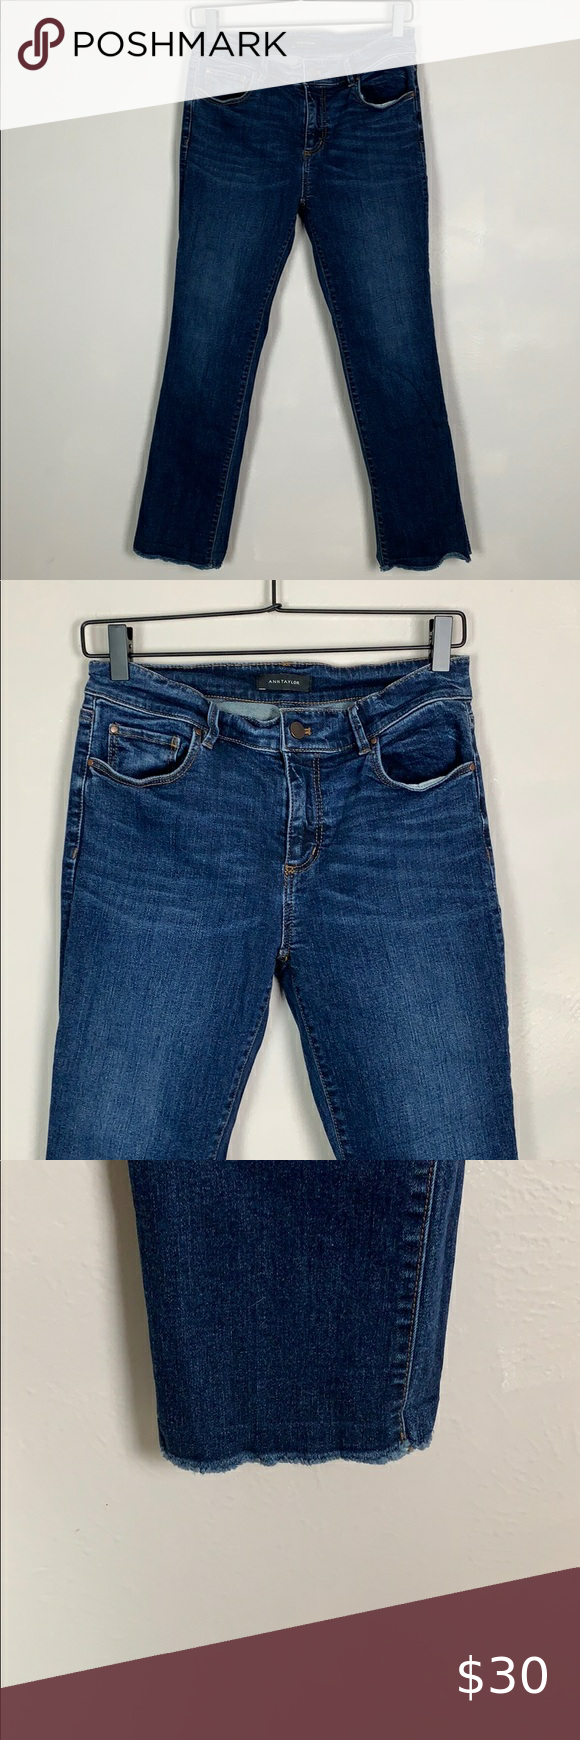 Ann Taylor Cropped Modern Fit Jeans In 2020 Jeans Fit Clothes Design Modern Fit